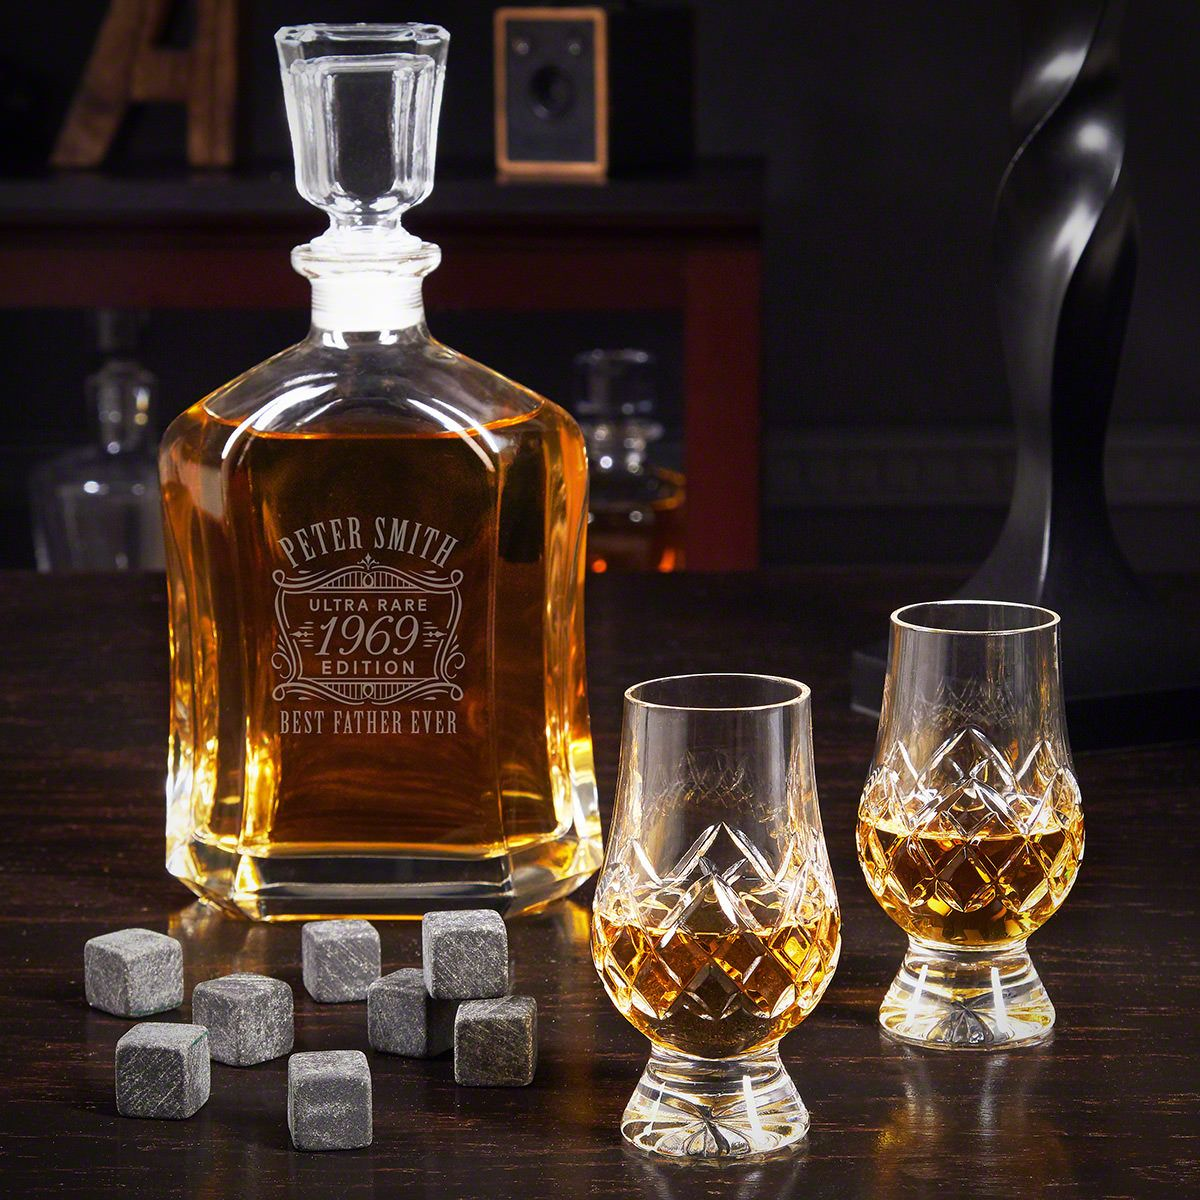 Ultra Rare Edition Custom Argos Whiskey Decanter Set with Crystal Glencairn Glasses